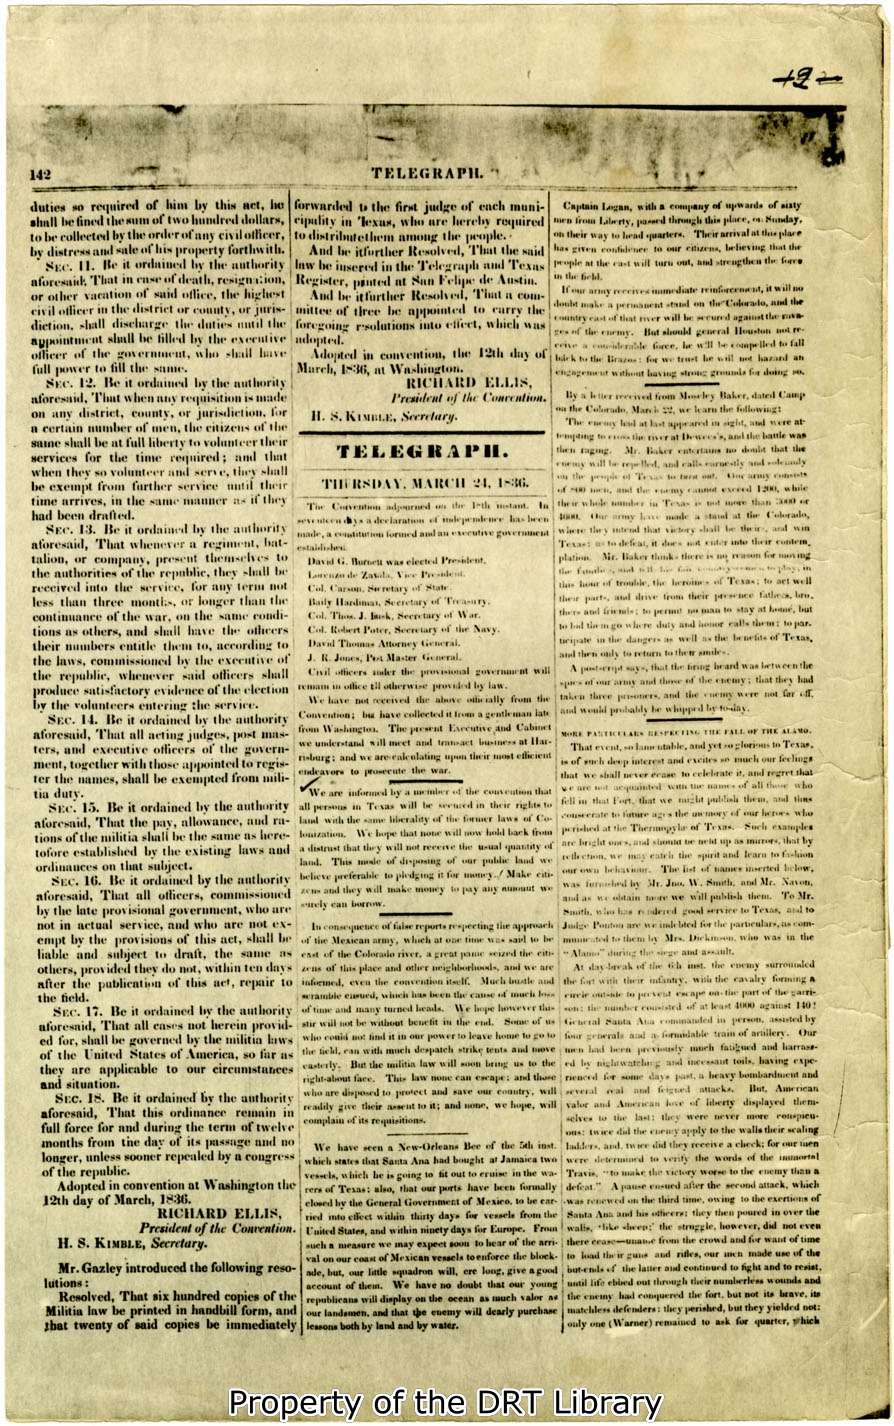 newspaper articles as primary sources